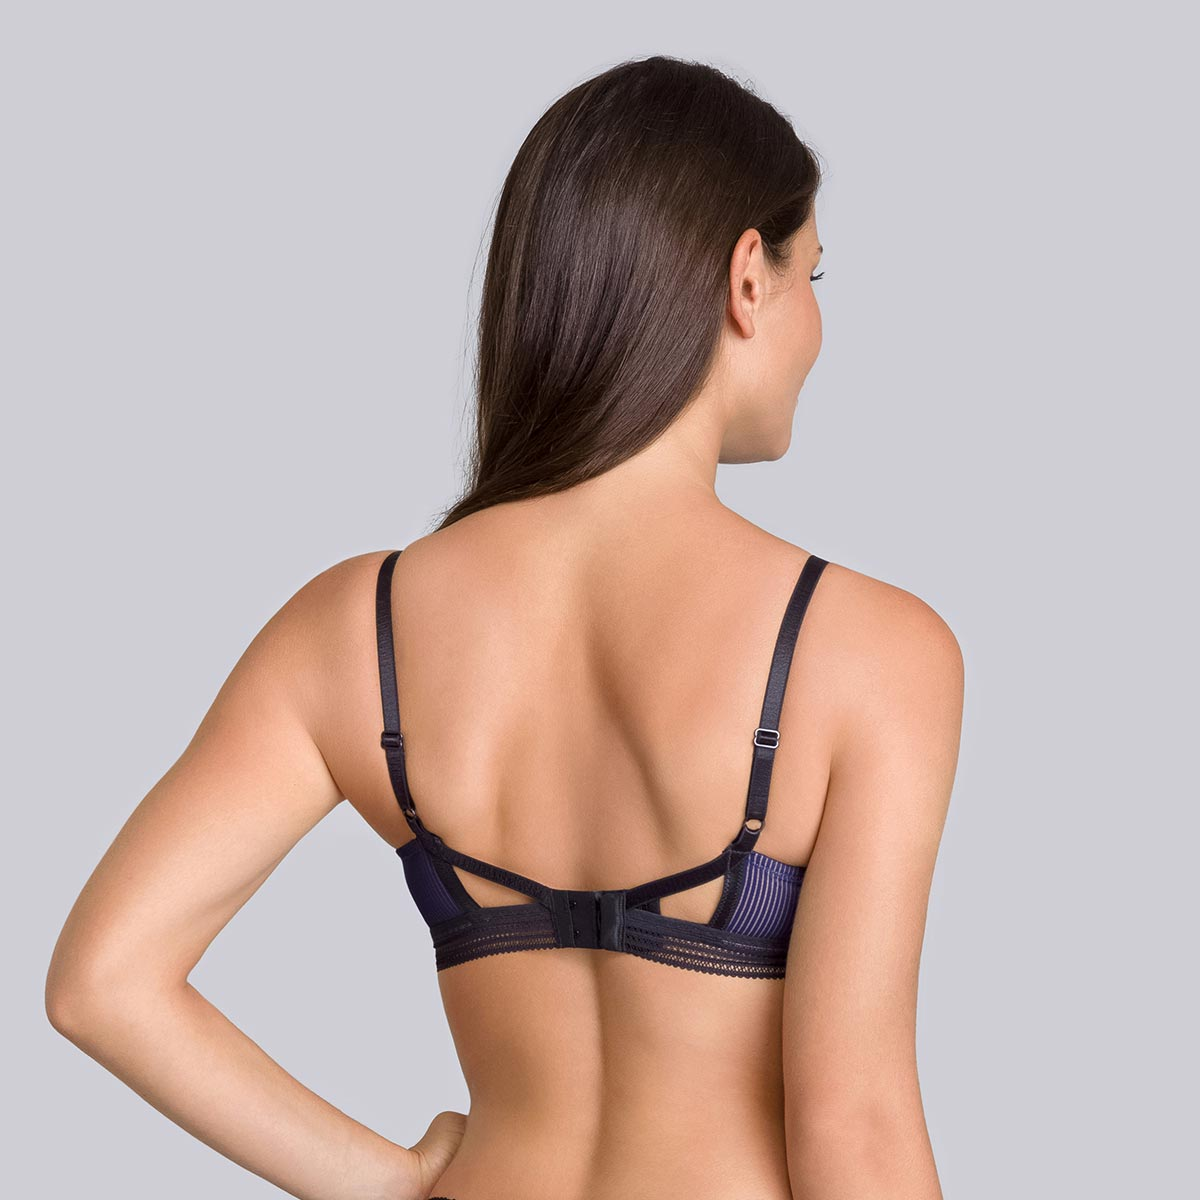 Reggiseno senza ferretto blu navy e nero - Smocking Chic - PLAYTEX